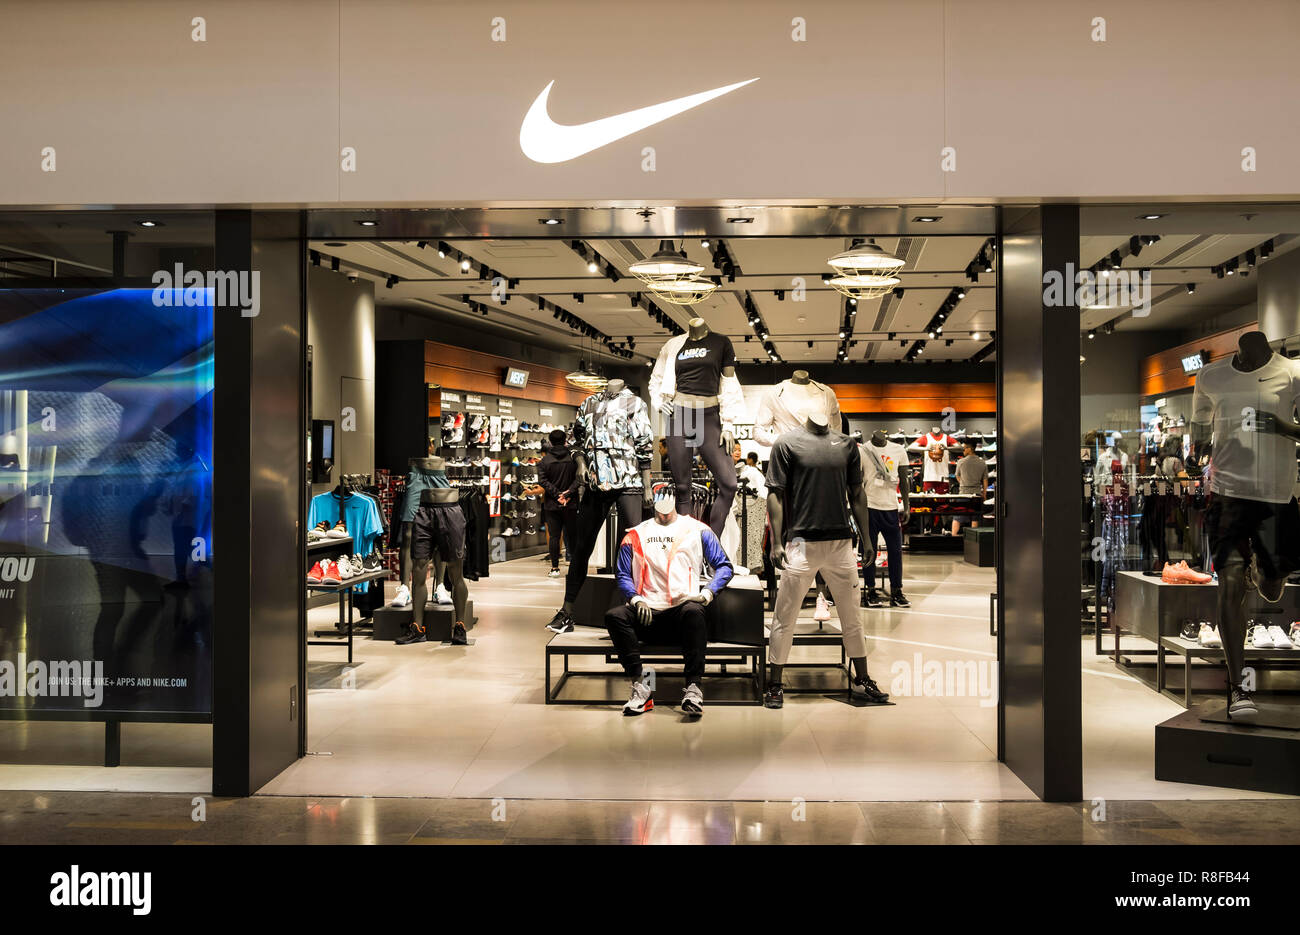 Eso mejilla Ambientalista  Nike Store High Resolution Stock Photography and Images - Alamy